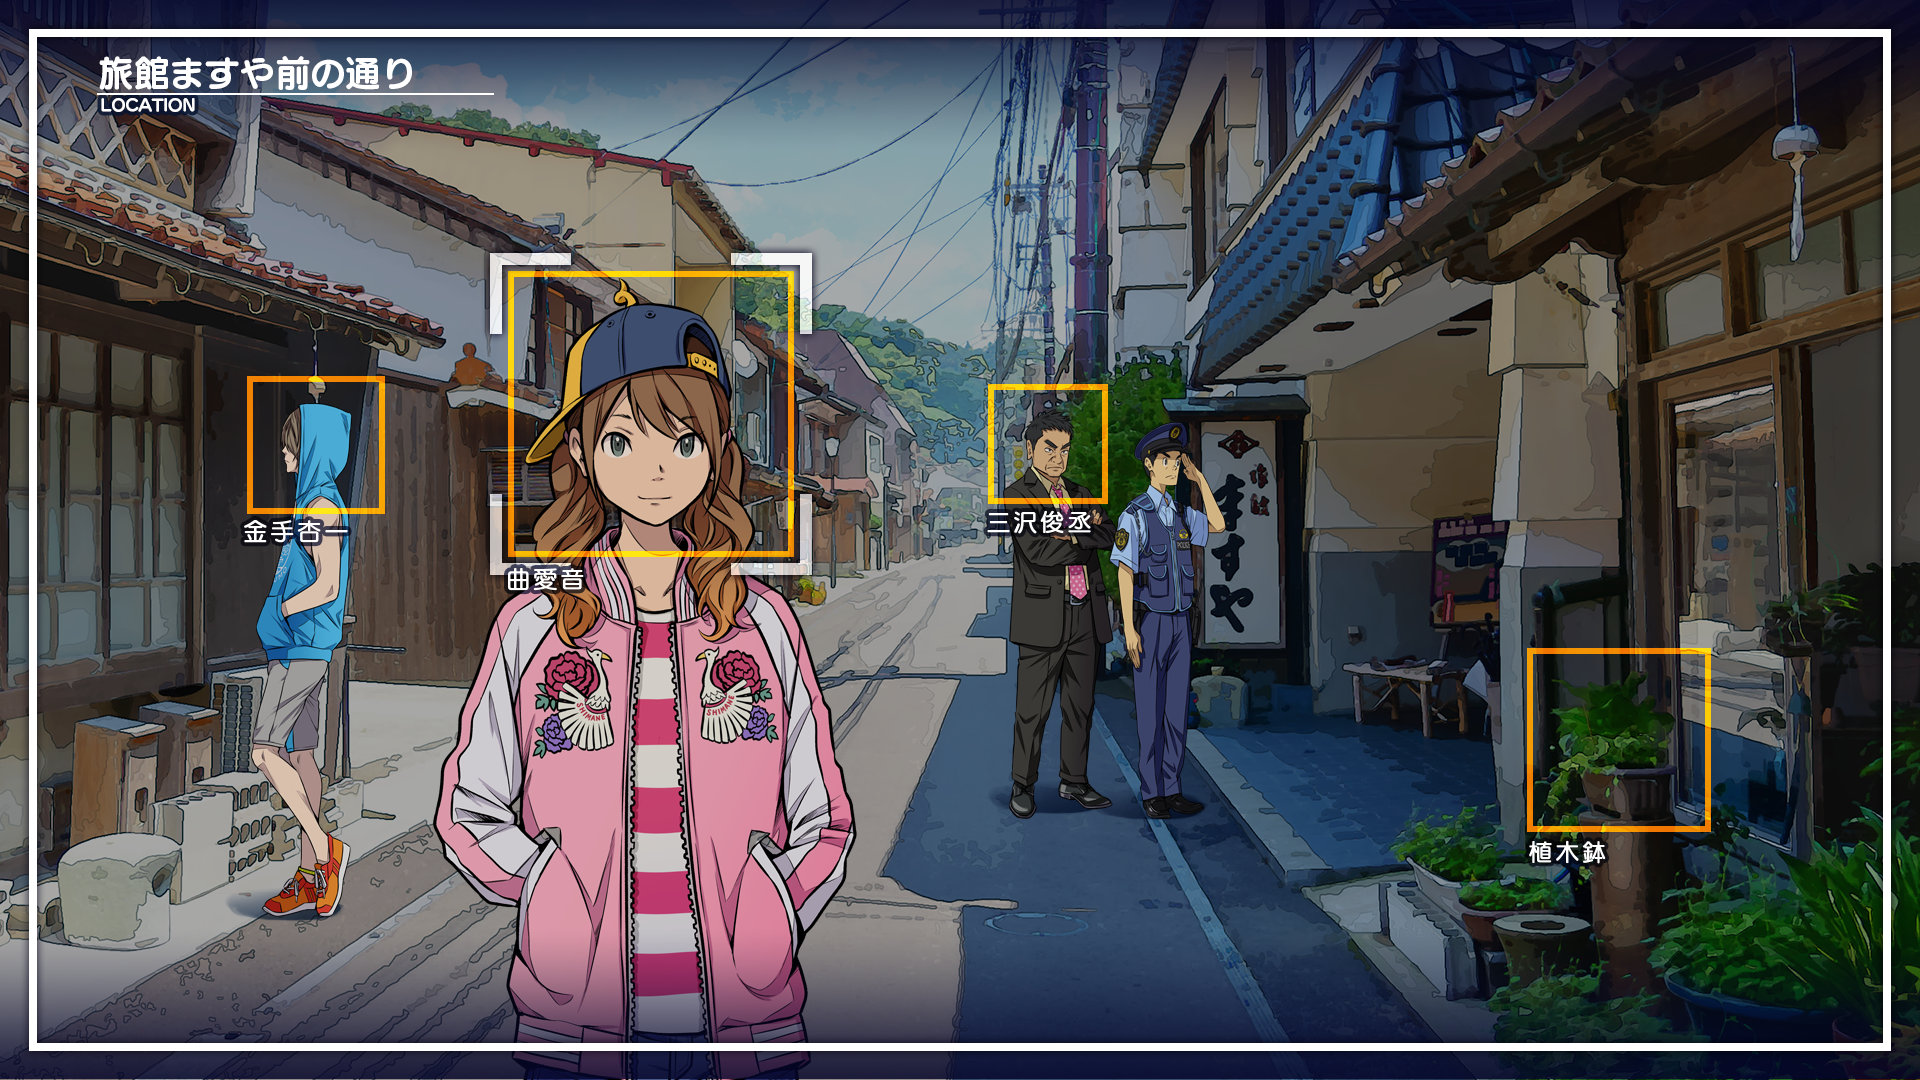 The player targets two characters for inspection in Root Film.